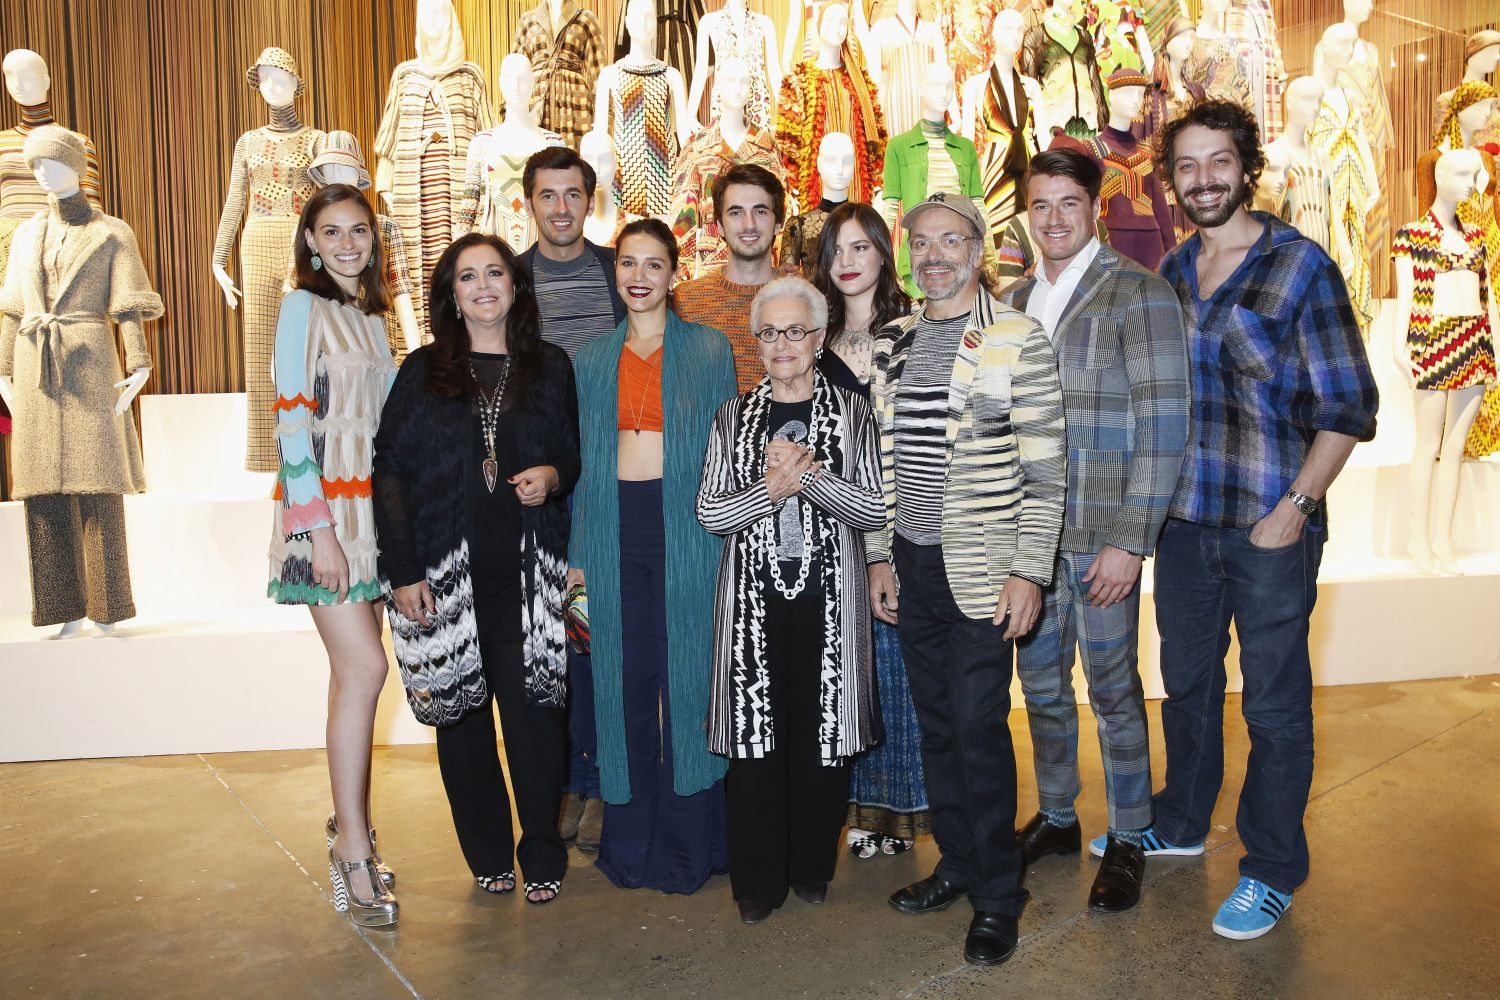 kLONDON, ENGLAND - MAY 04: Jennifer Missoni, Angela Missoni, Ottavio Missoni, Margherita Maccapani Missoni, Marco Missoni, Rosita Missoni, Teresa Maccapani Missoni, Luca Missoni, Giacommo Missoni and Francesco Maccapani Missoni attend the Missoni Art Colour preview in partnership with Woolmark at The Fashion and Textile Museum on May 4, 2016 in London, England.  (Photo by Darren Gerrish/WireImage) *** Local Caption *** Jennifer Missoni; Angela Missoni; Ottavio Missoni; Margherita Maccapani Missoni; Marco Missoni; Rosita Missoni; Teresa Maccapani Missoni; Luca Missoni; Giacommo Missoni; Francesco Maccapani Missoni